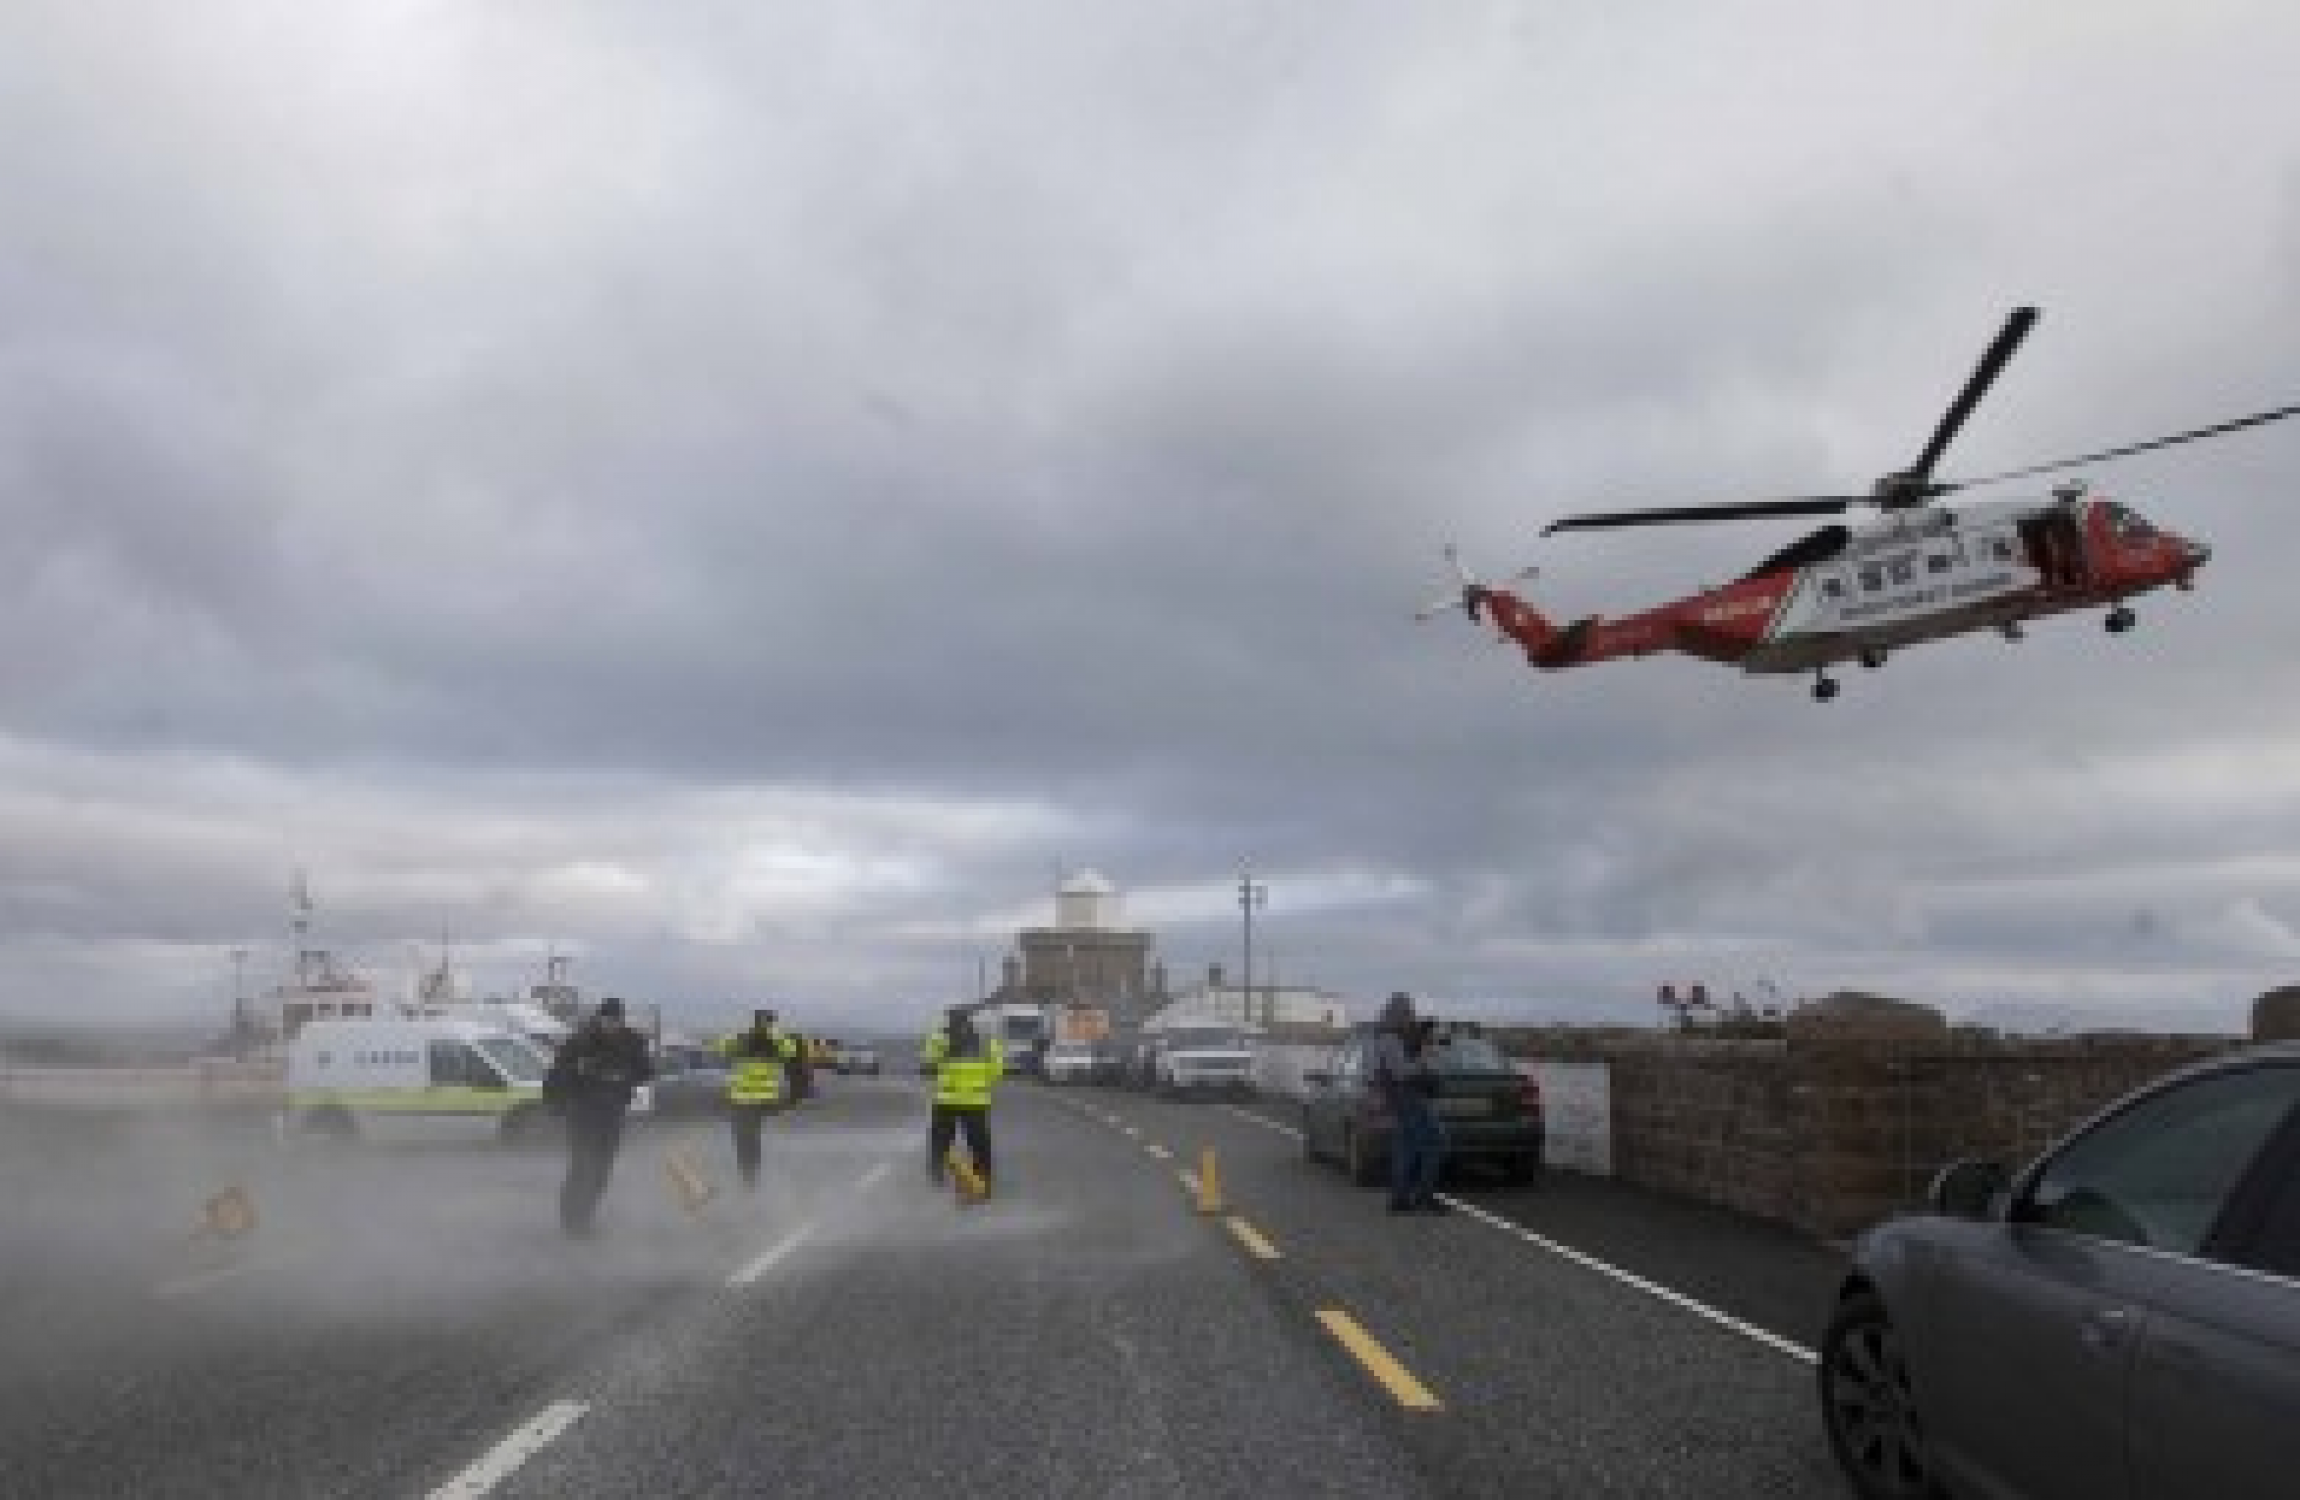 R116 coastguard helicopter: Body of crew member recovered